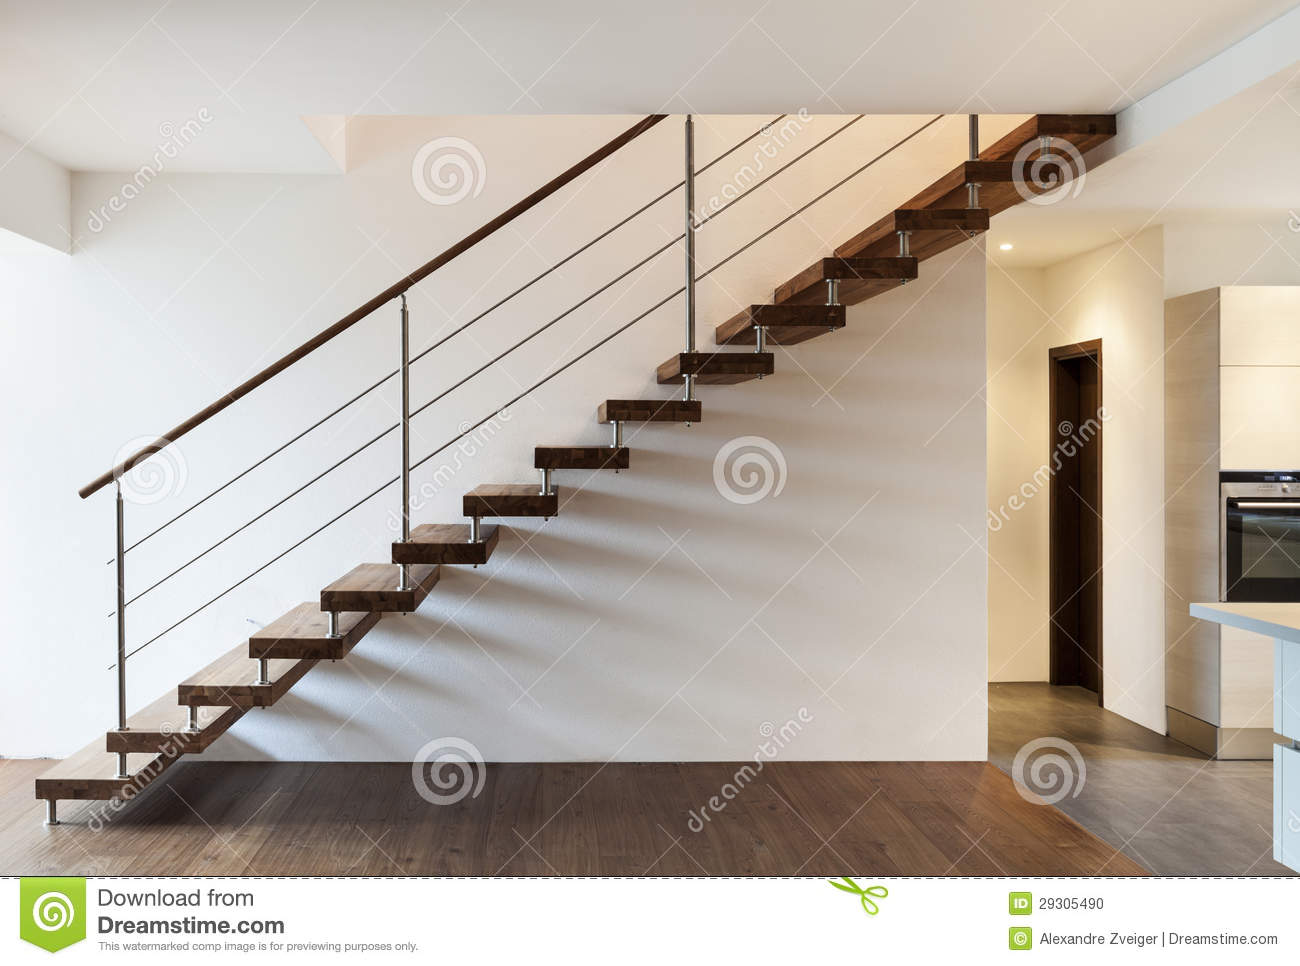 Escalier int rieur photo stock image 29305490 for Escalier interieur moderne